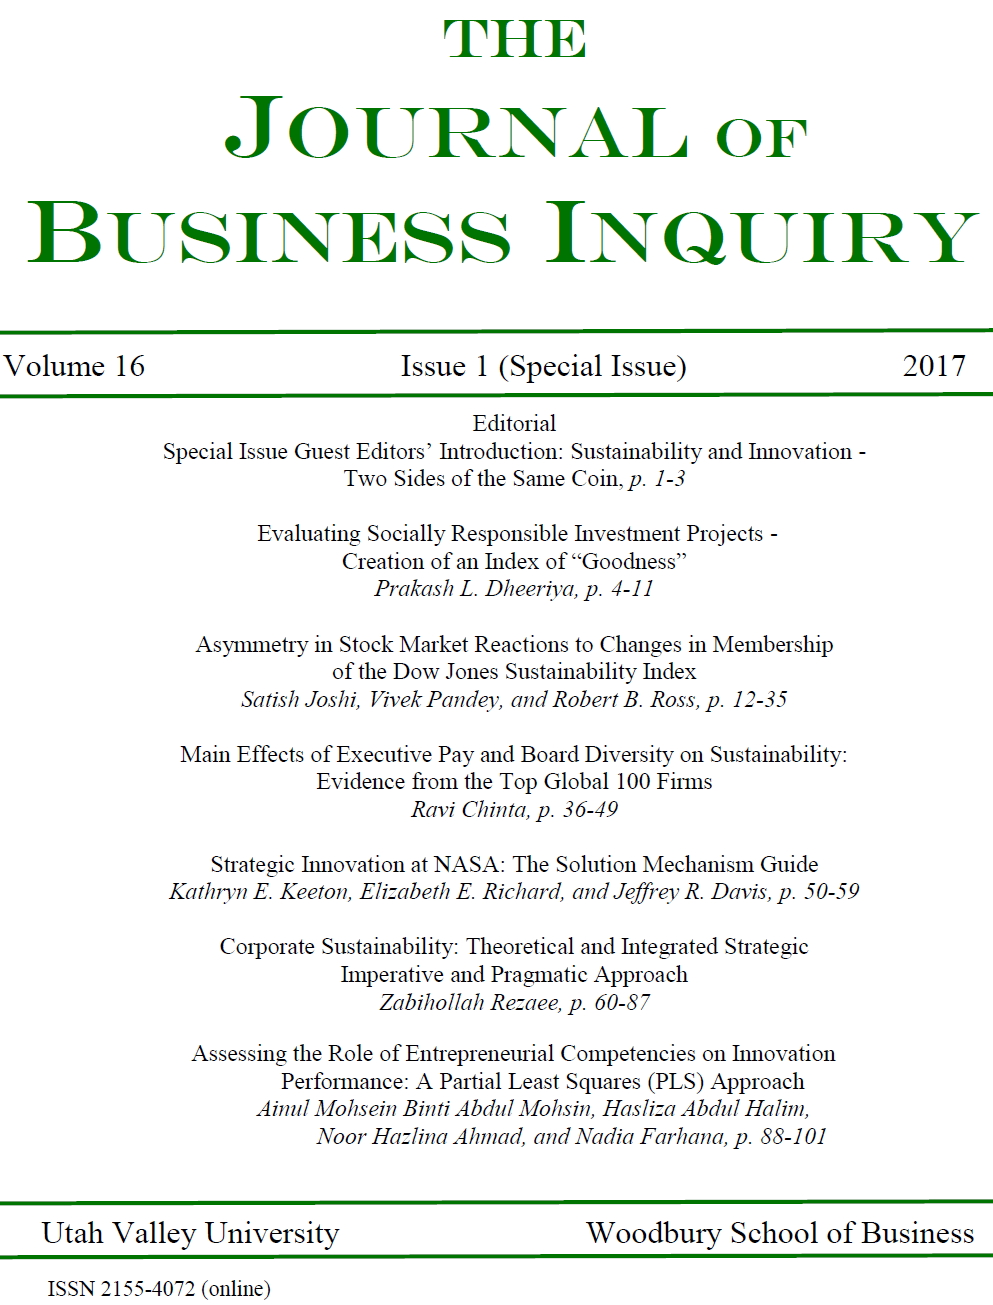 asymmetry in stock market reactions to changes in membership of the dow jones sustainability index the journal of business inquiry